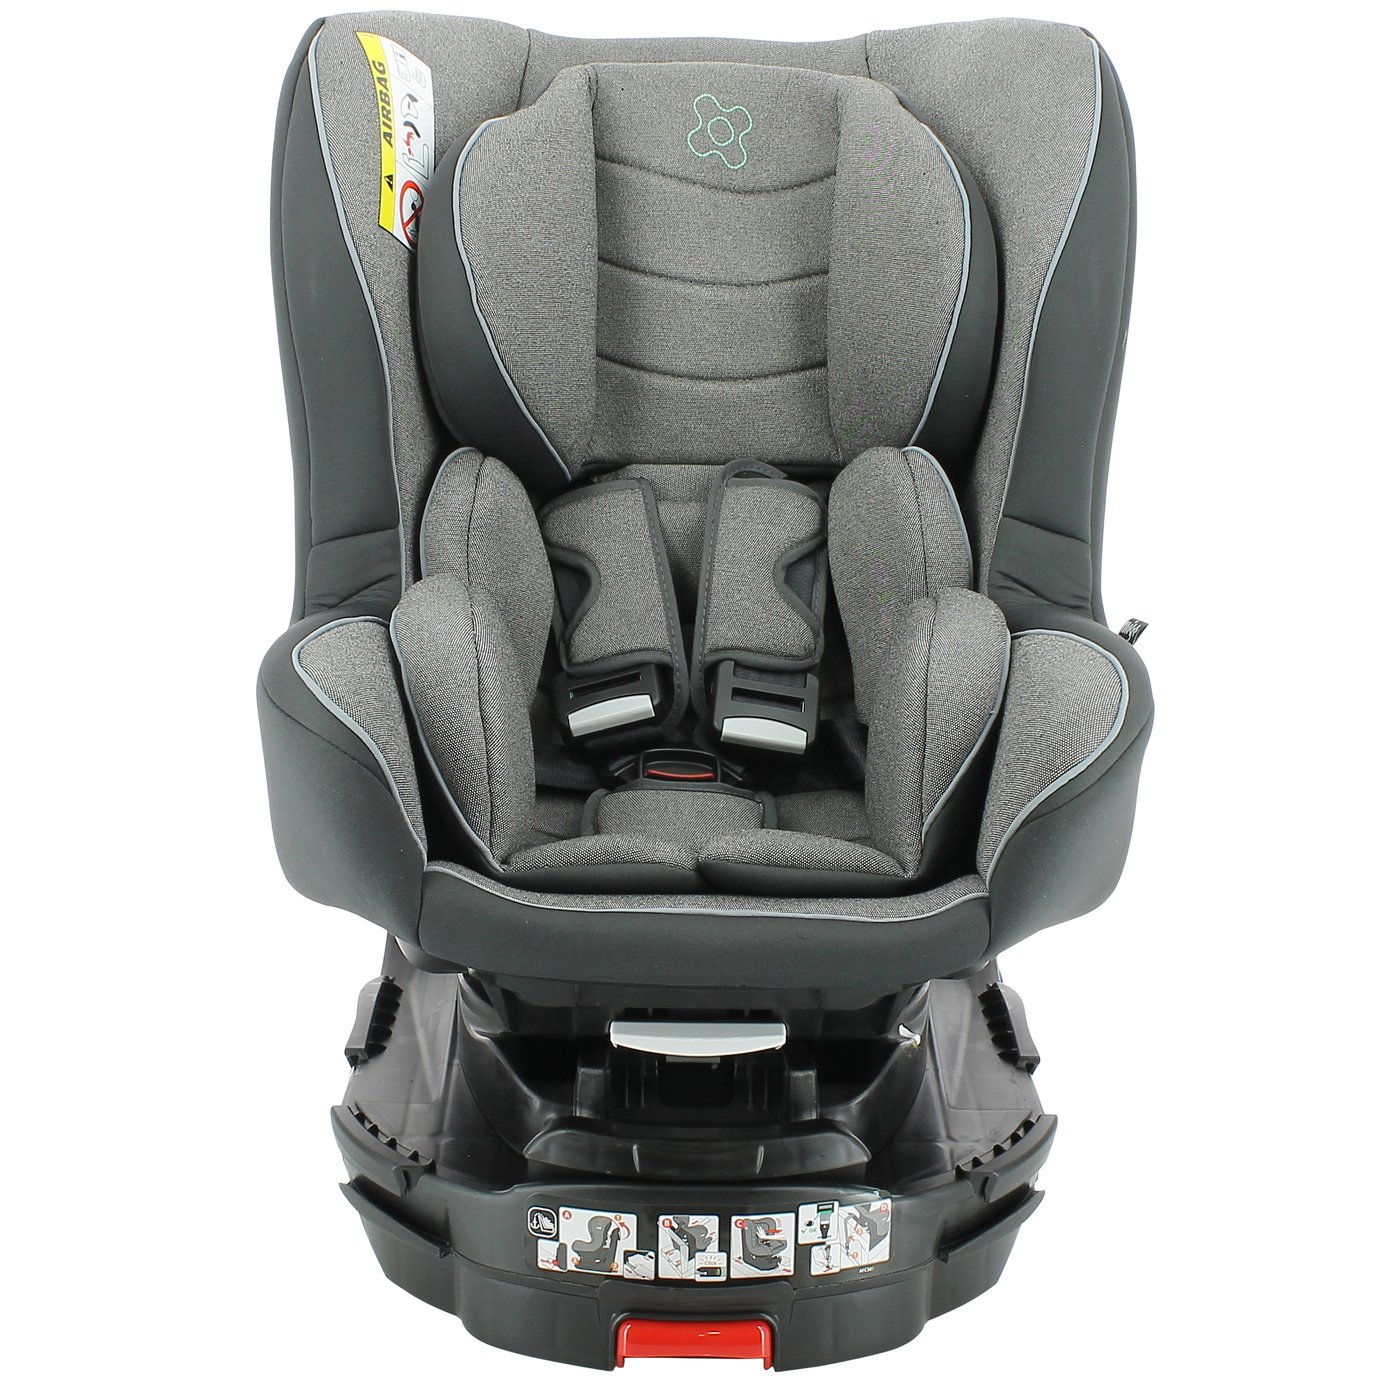 Migo Titan Platinum Group 0+/1 ISOFIX Car Seat - Grey